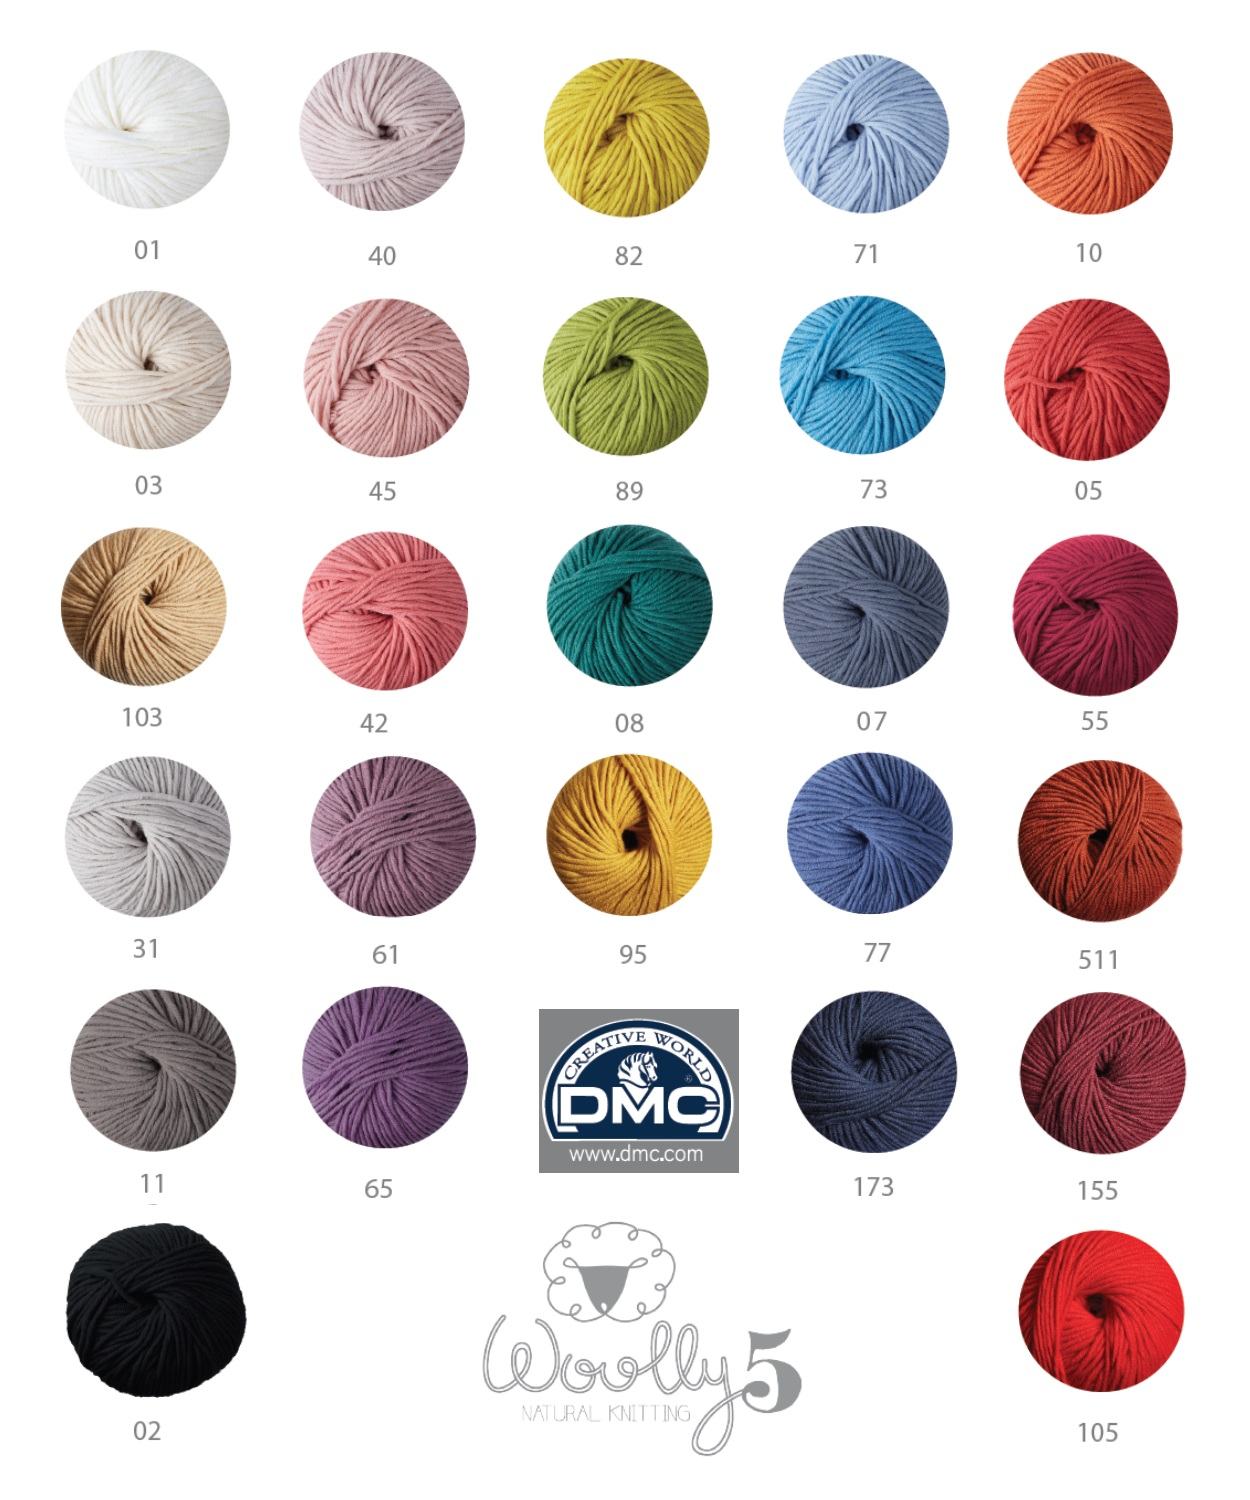 Dmc woolly 5 knitting crochet yarn 100 merino wool 50g dmc woolly 5 shade card nvjuhfo Choice Image